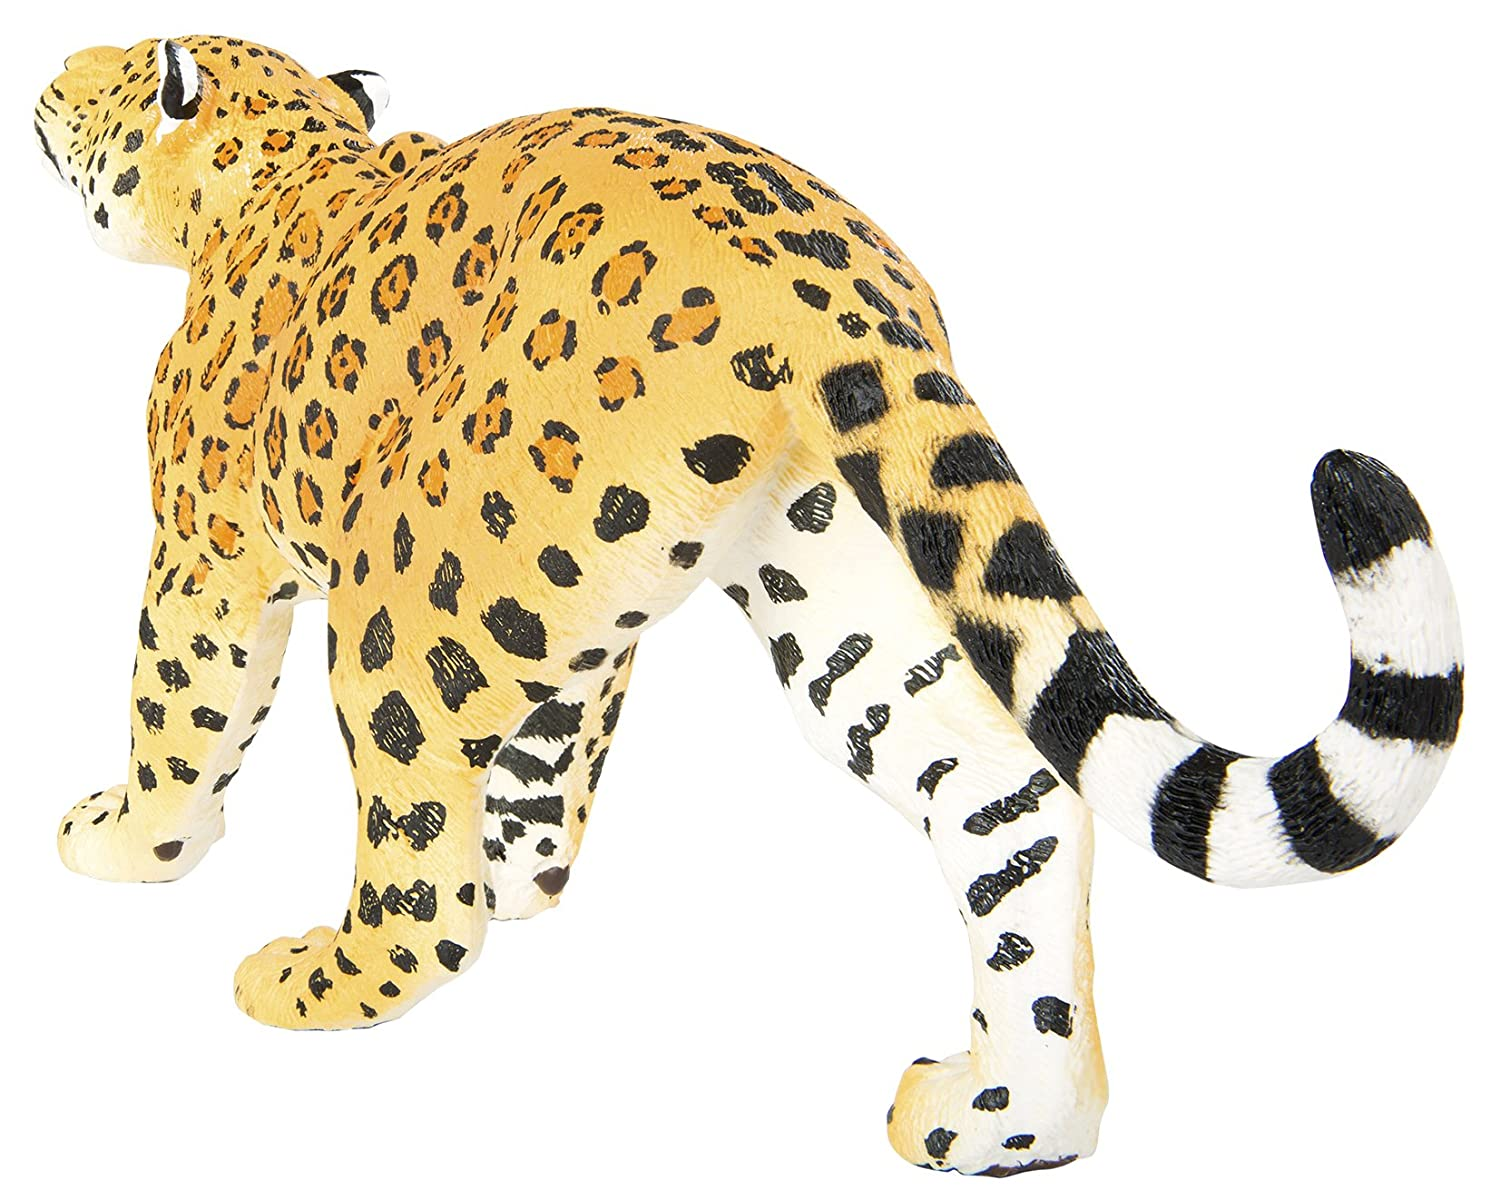 Safari Ltd Wildlife Wonders Quality Construction from Phthalate Jaguar XL for Ages 3 and Up Lead and BPA Free Materials